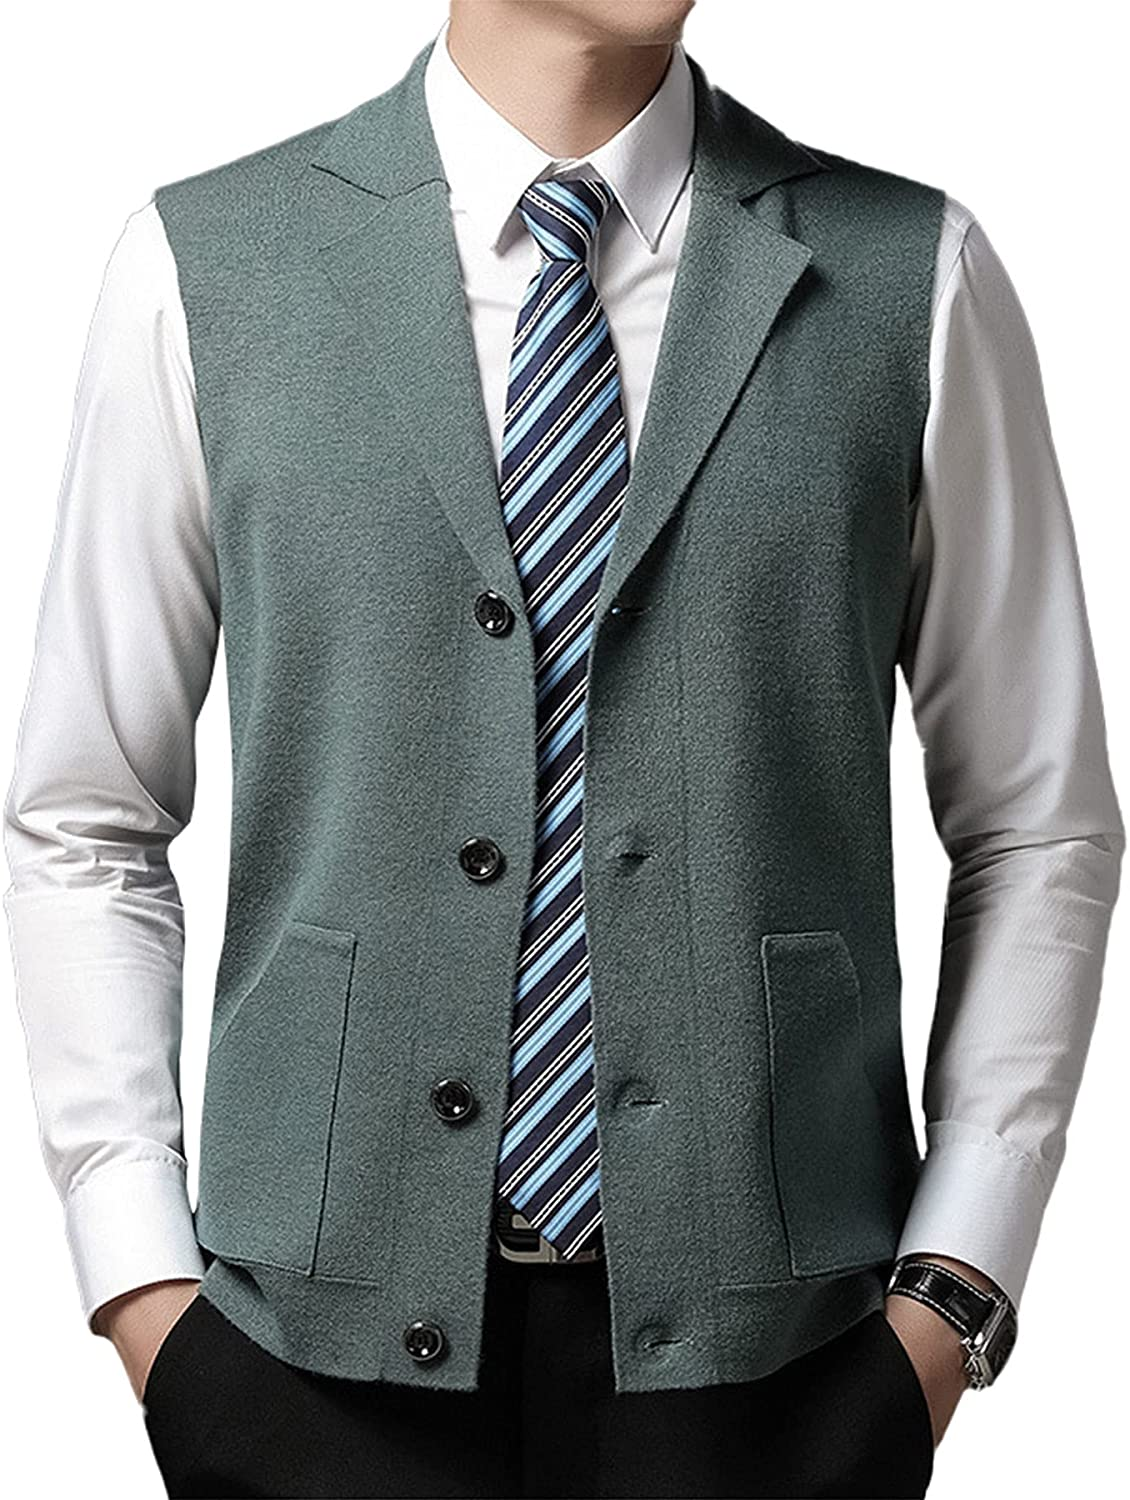 Men's Casual Vest Solid Color Suit Collar Single Breasted Young and Middle-Aged Knitted Wool Vest Waistcoat